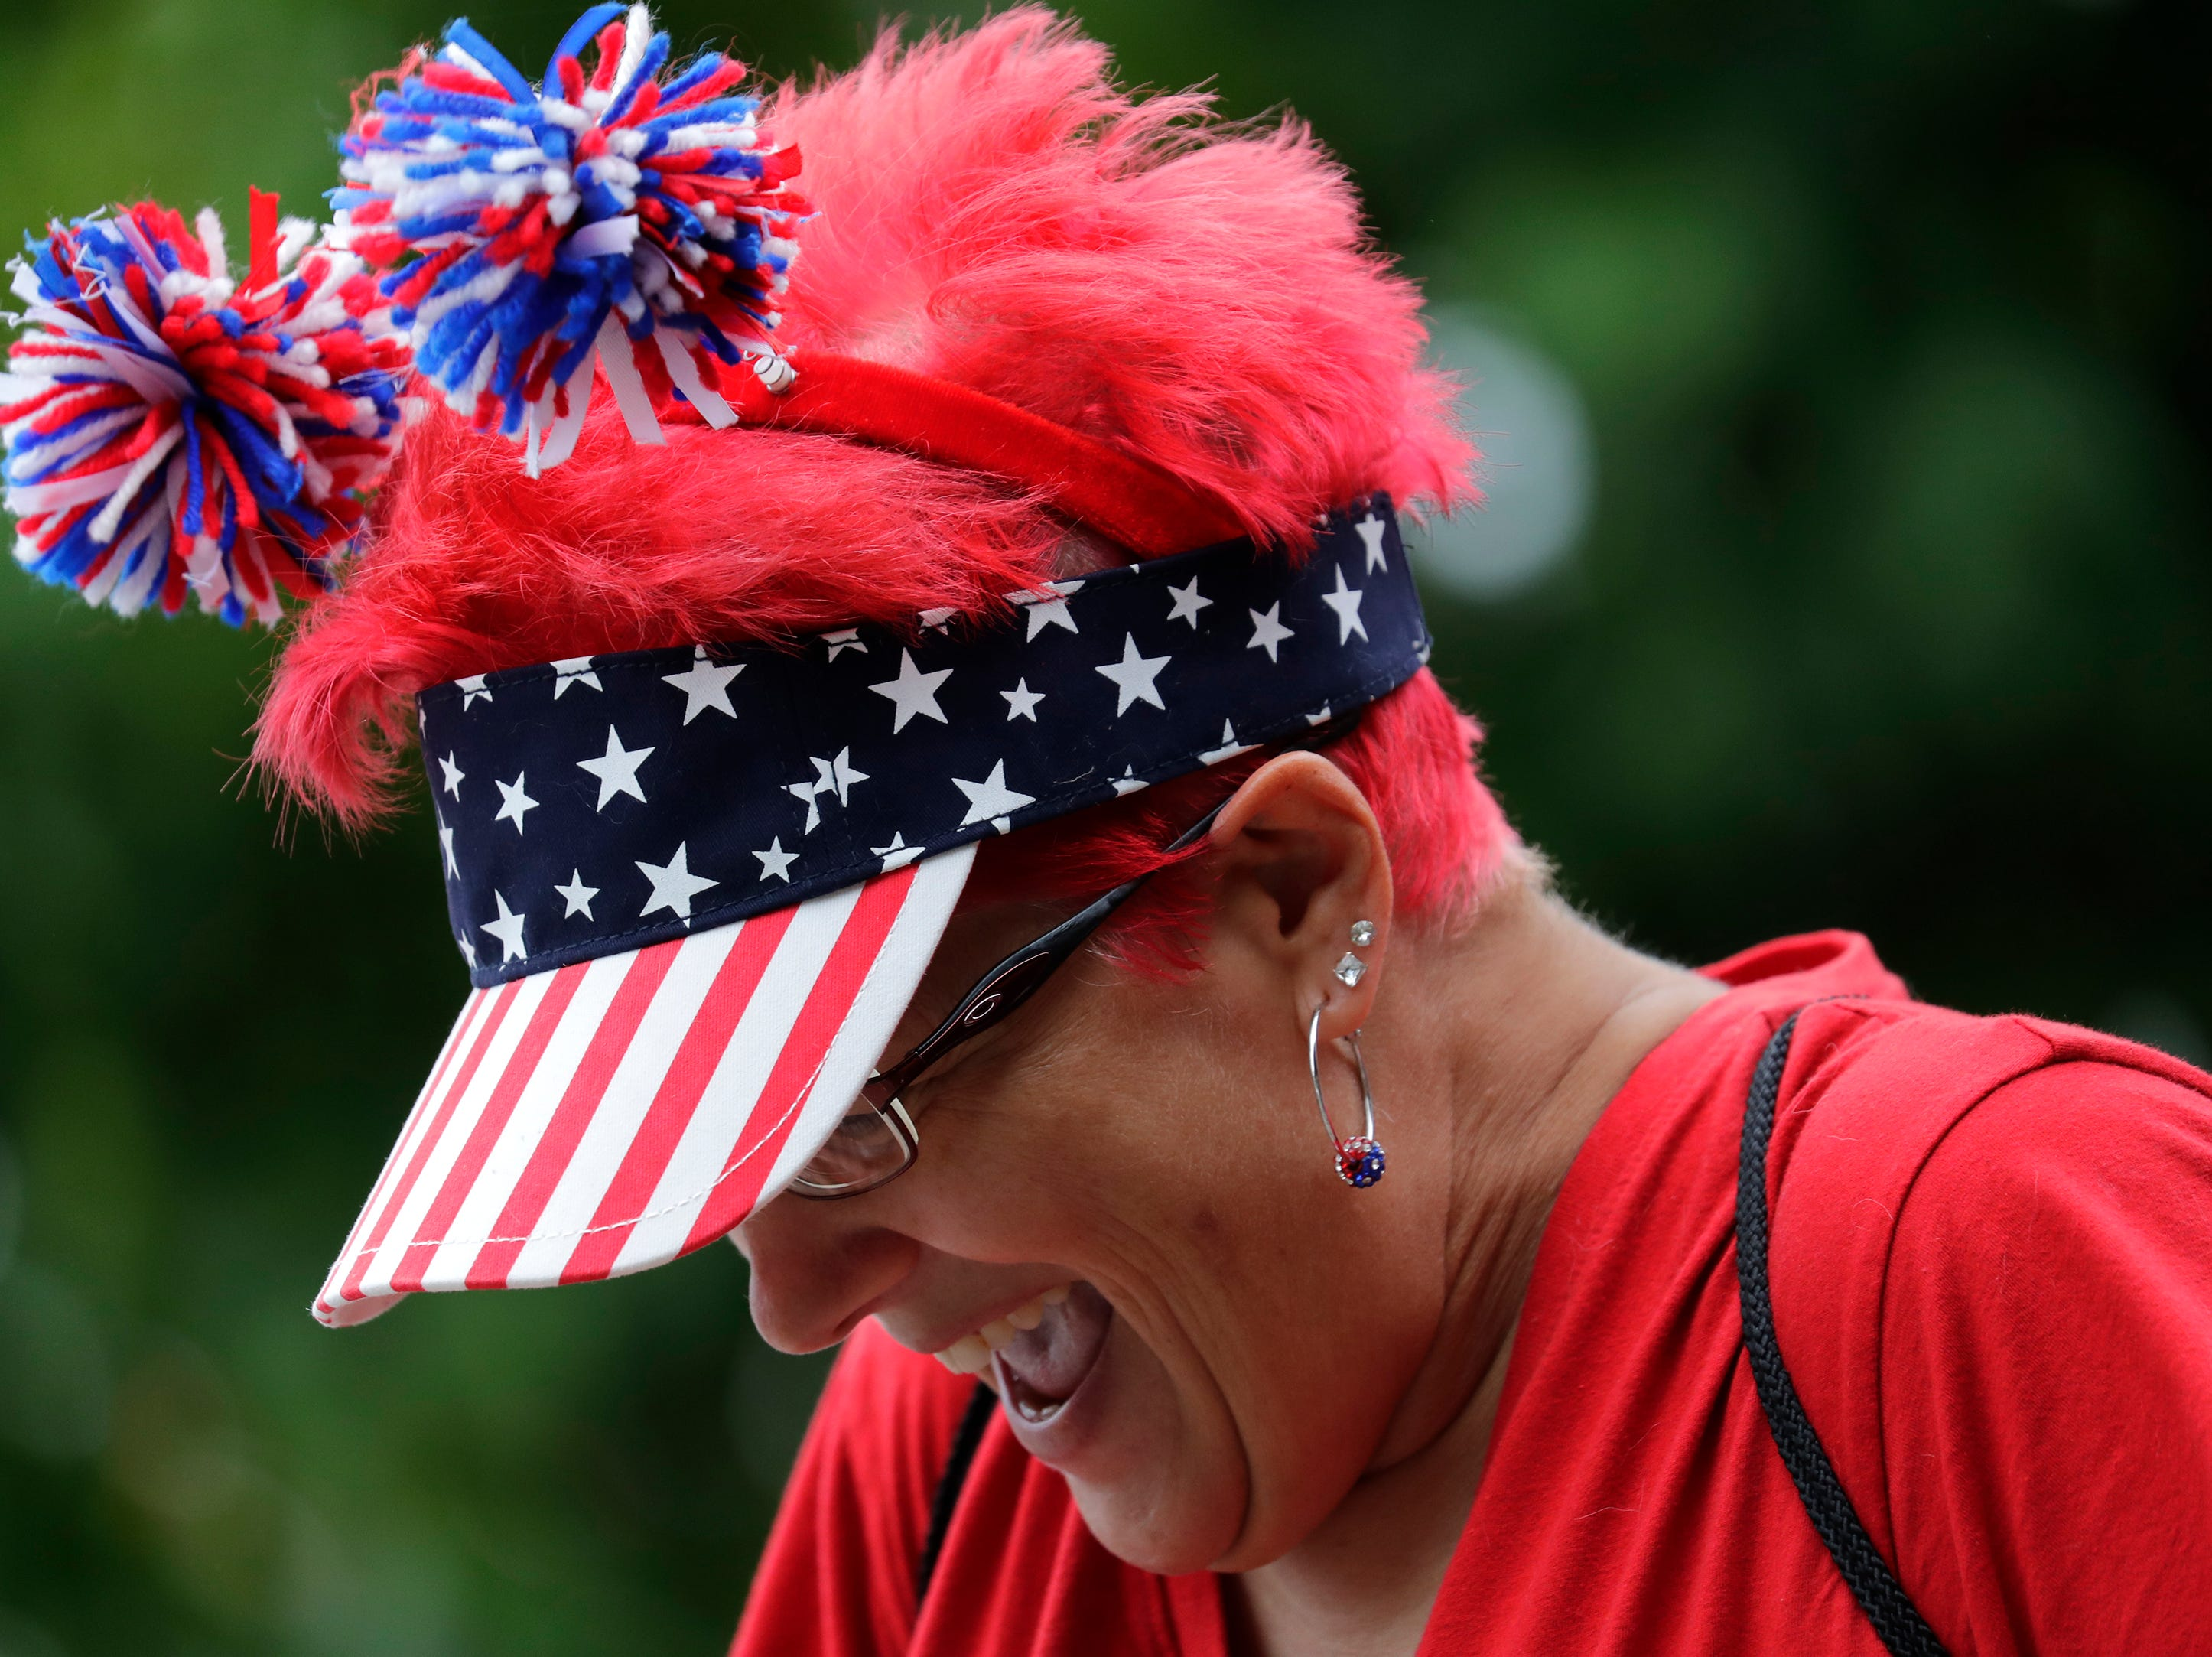 Amy Schneider of Wautoma participates in the Neenah-Menasha Labor Day Parade Monday, Sept. 3, 2018, in downtown Menasha, Wis. 